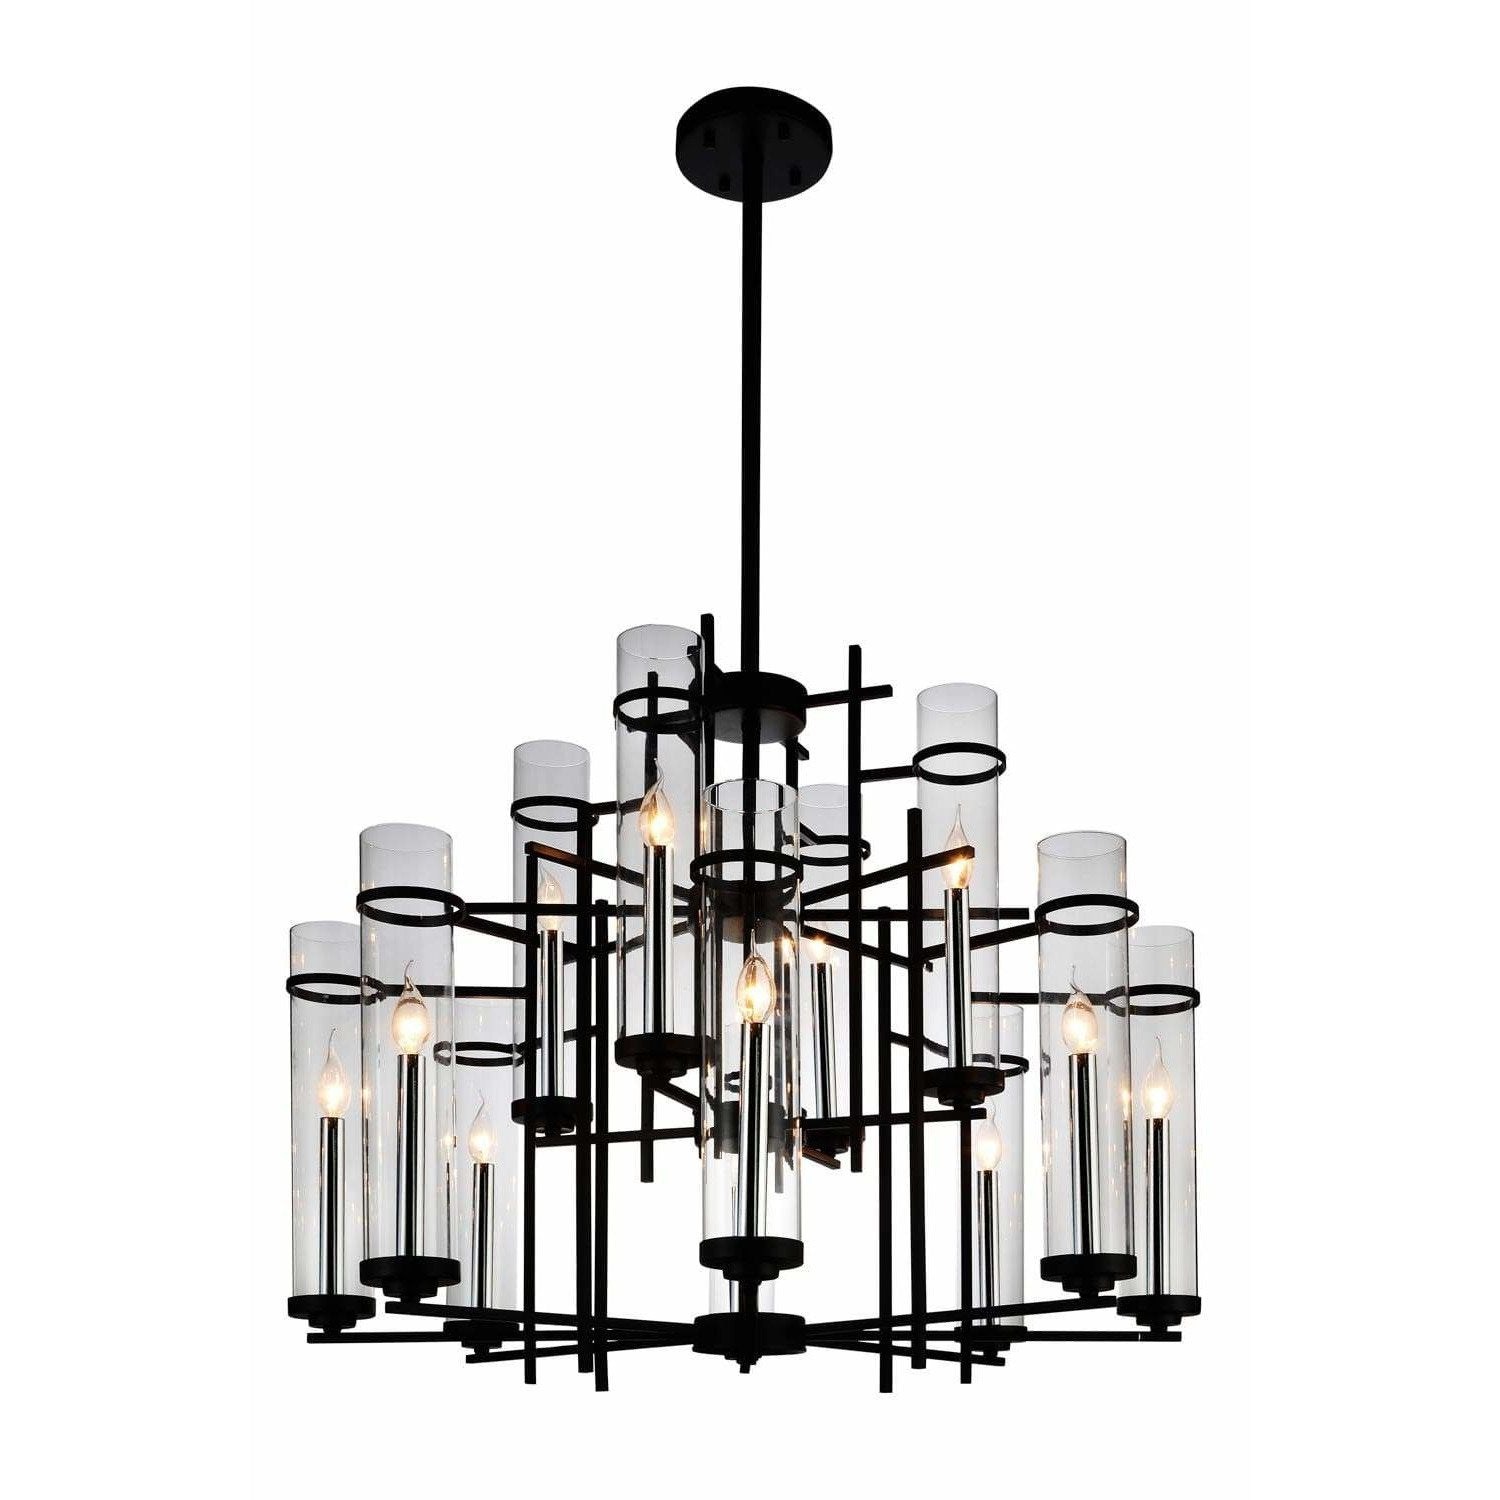 CWI Lighting Chandeliers Black Sierra 12 Light Up Chandelier with Black finish by CWI Lighting 9827P38-12-101